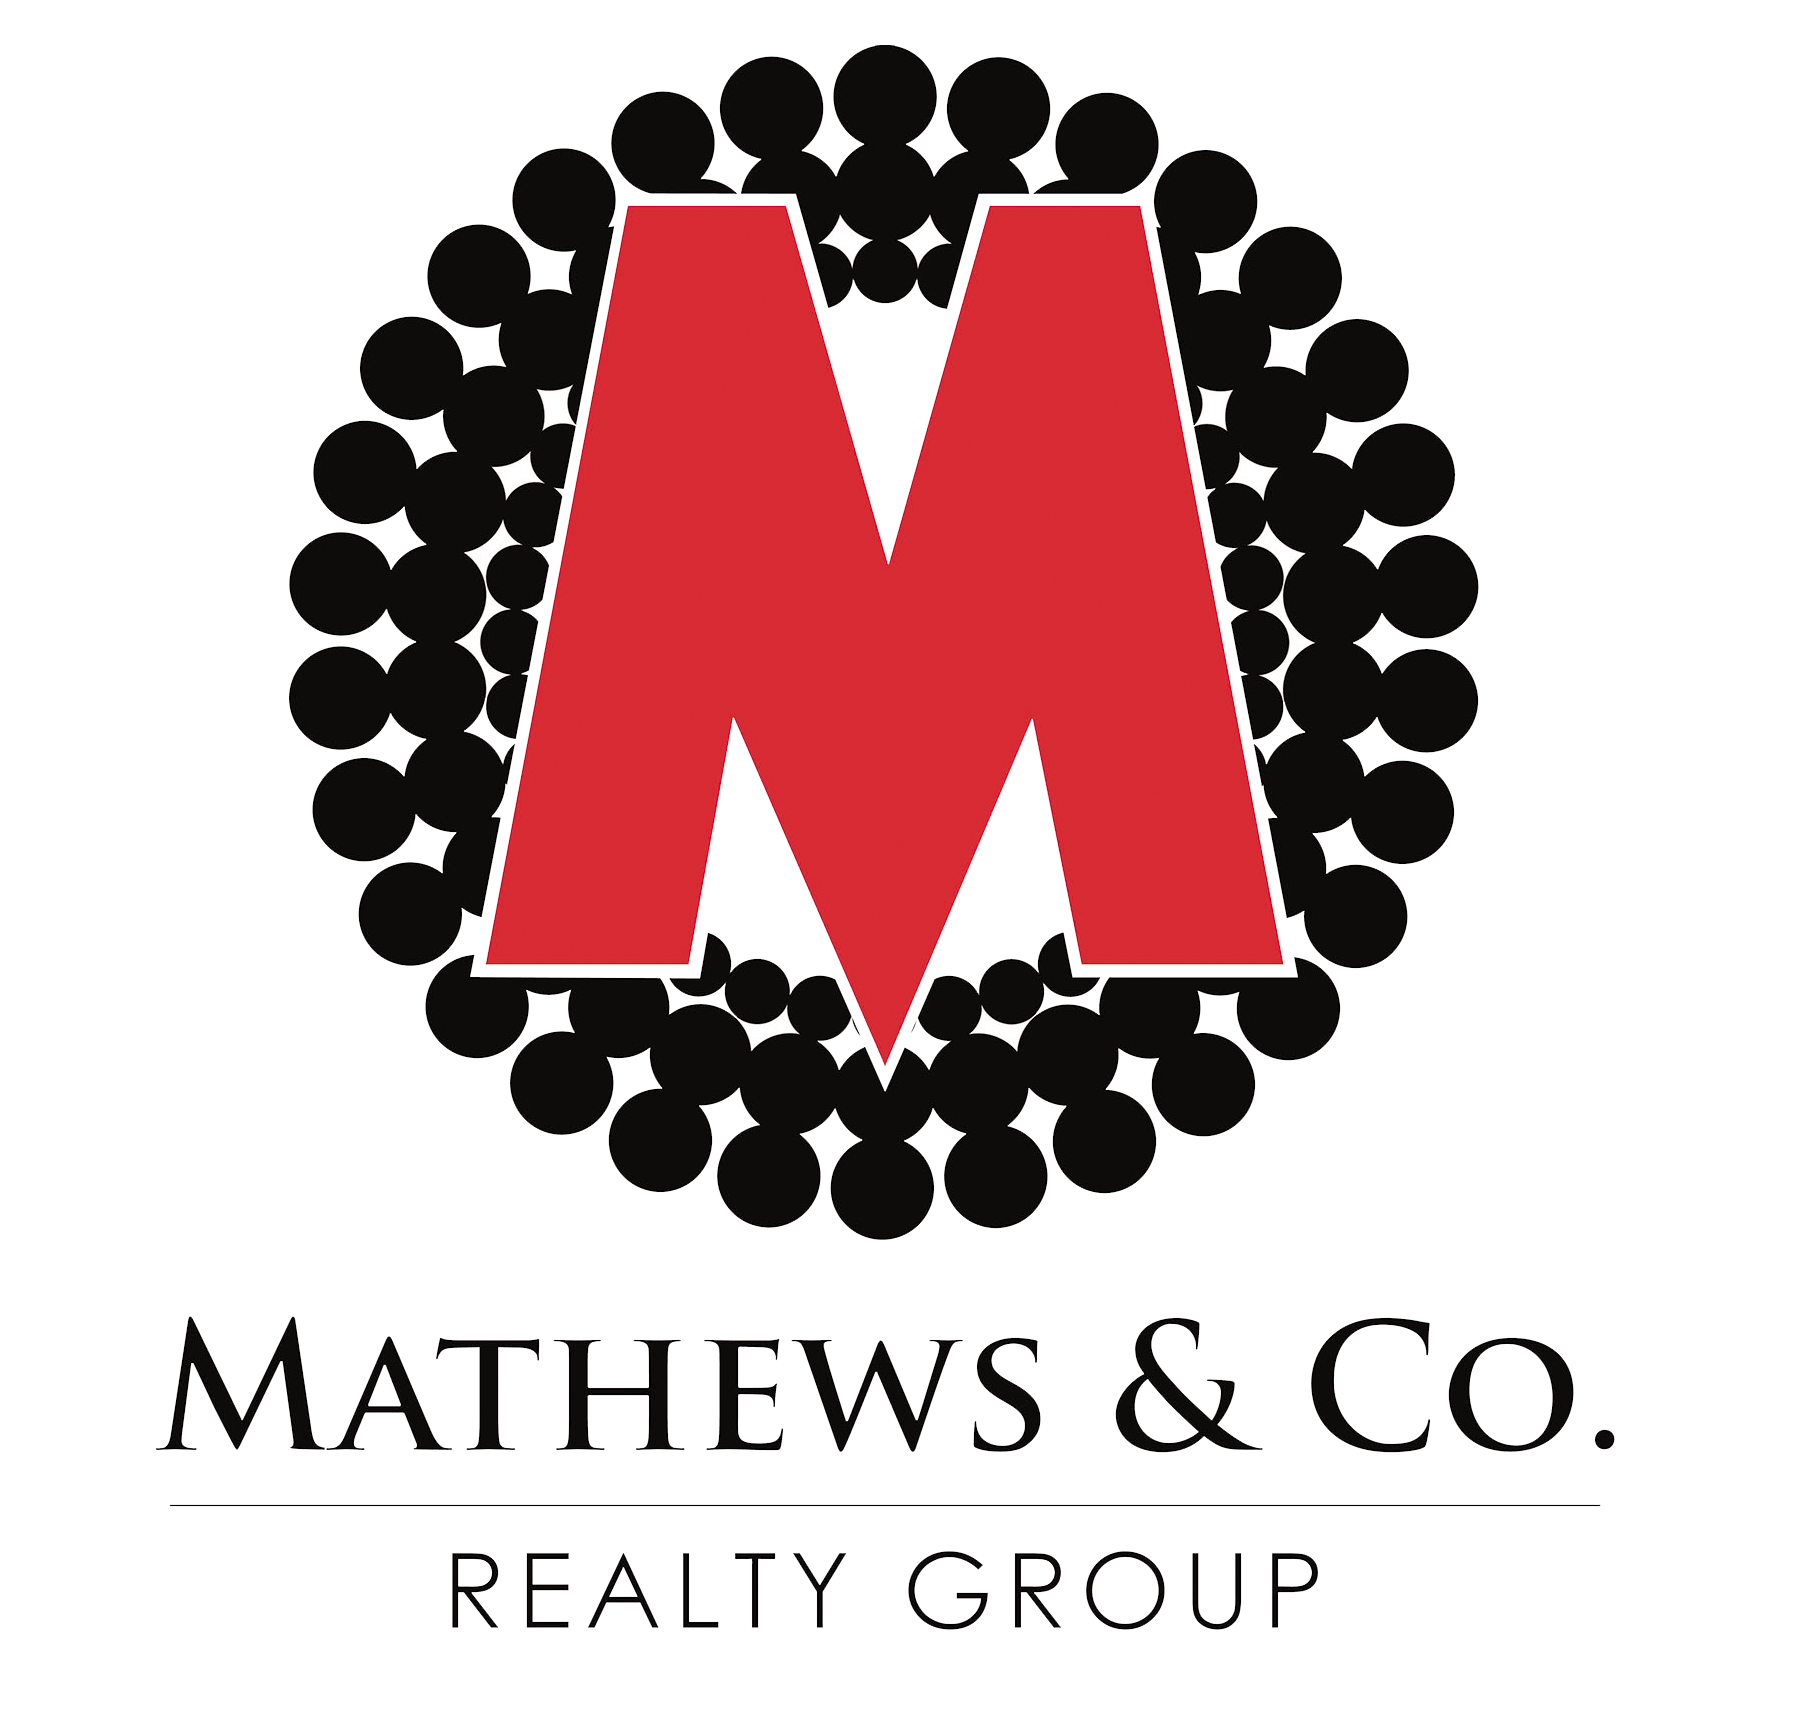 Mathews & Co. Realty Group